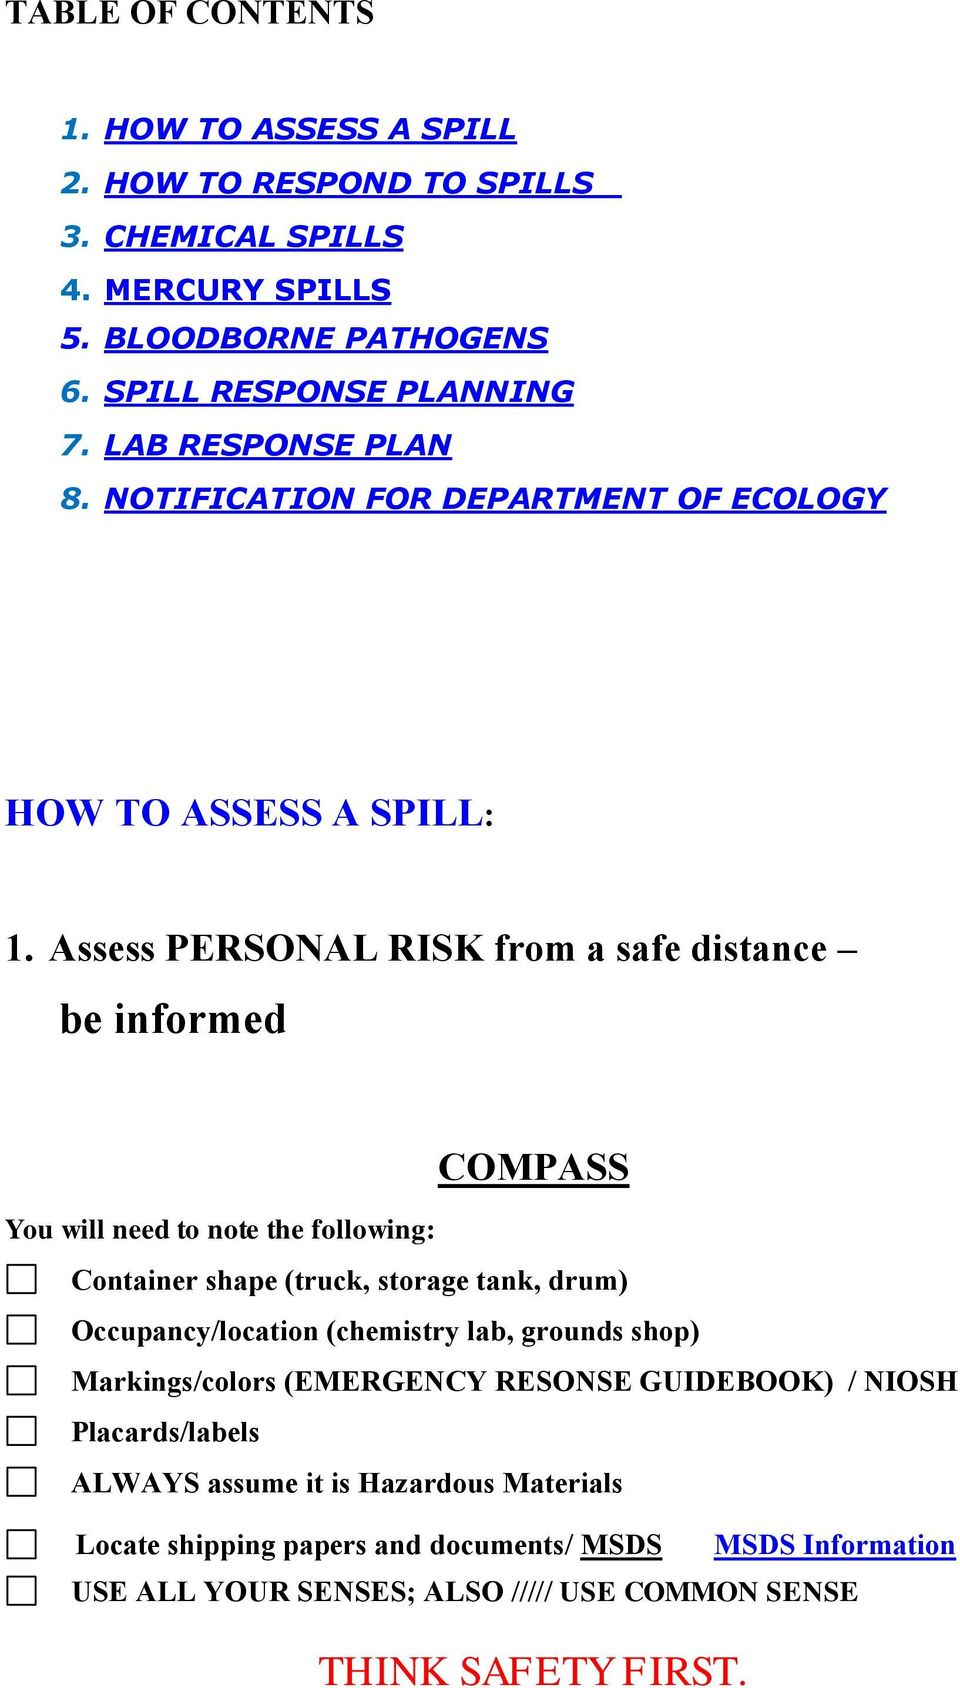 Assess PERSONAL RISK from a safe distance be informed COMPASS You will need to note the following: Container shape (truck, storage tank, drum) Occupancy/location